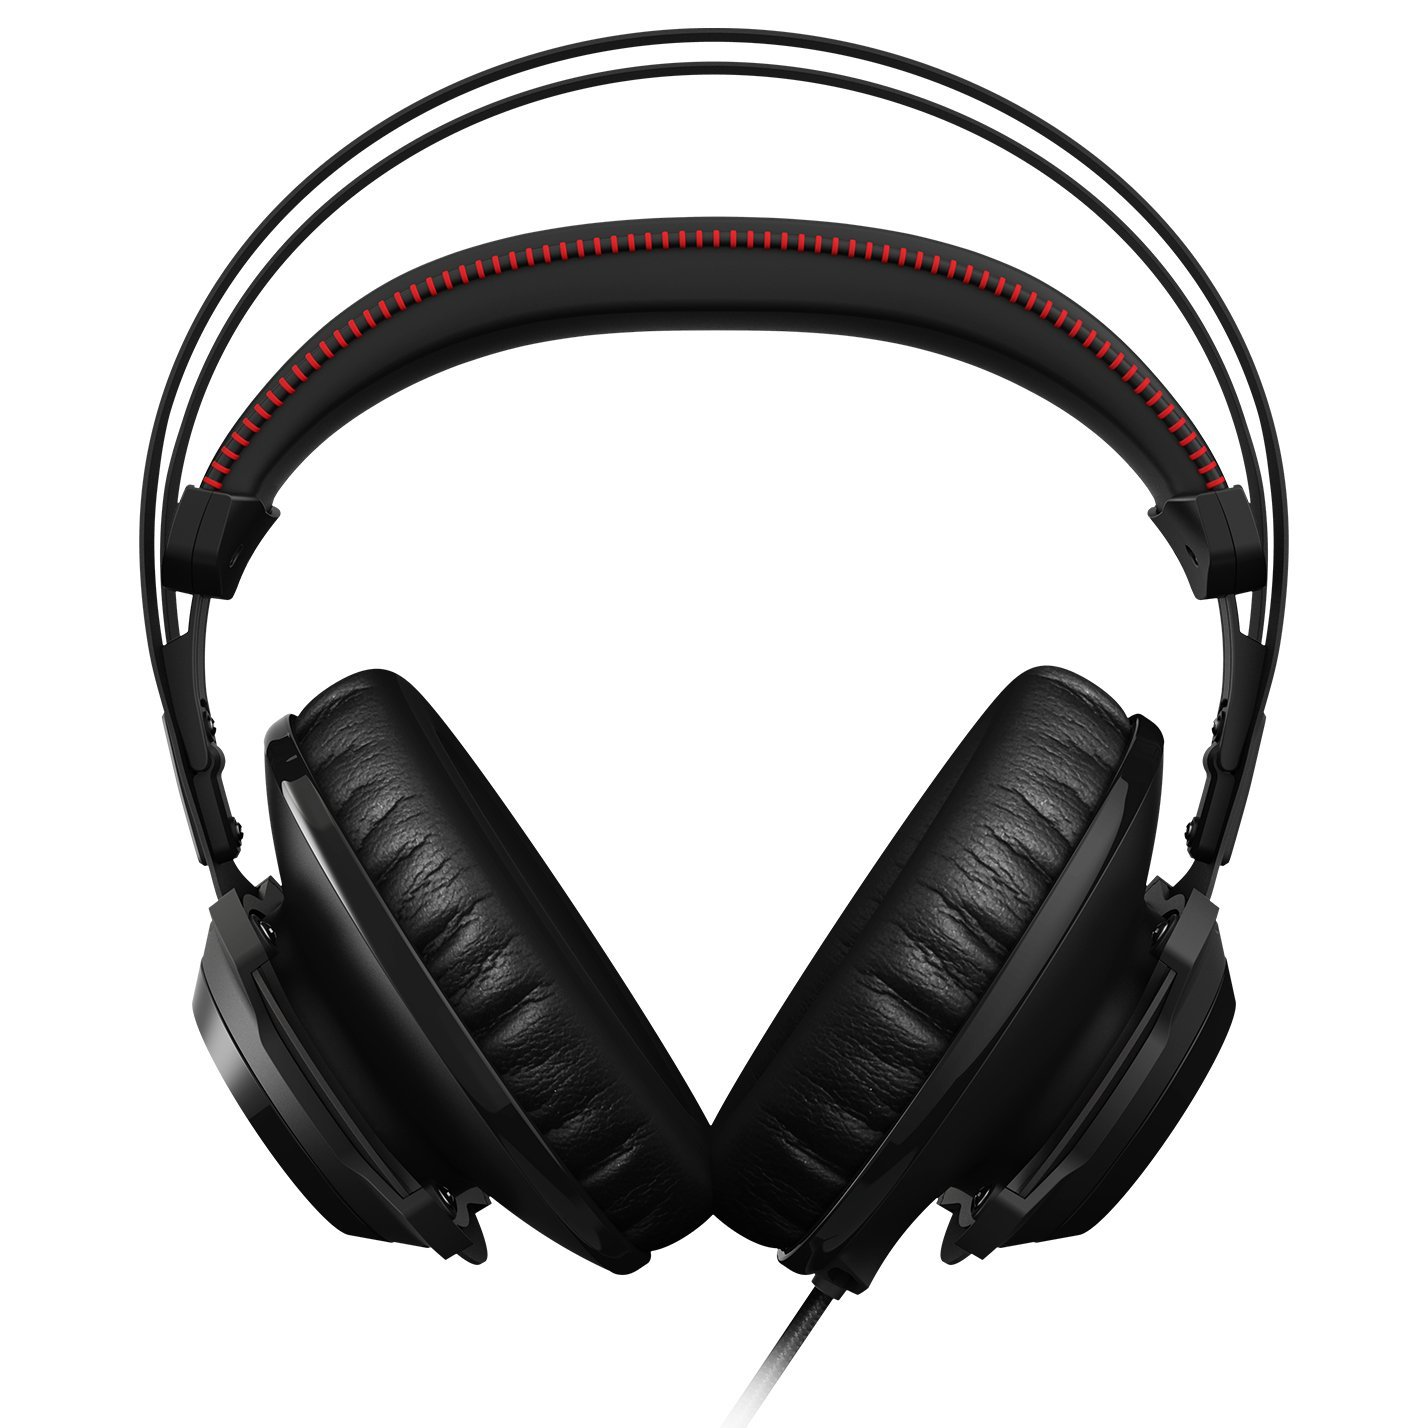 Kind of lining can you expect on the kingston hyperx cloud ii headset - Amazon Com Hyperx Cloud Revolver Gaming Headset For Pc Ps4 Hx Hscr Bk Na Computers Accessories